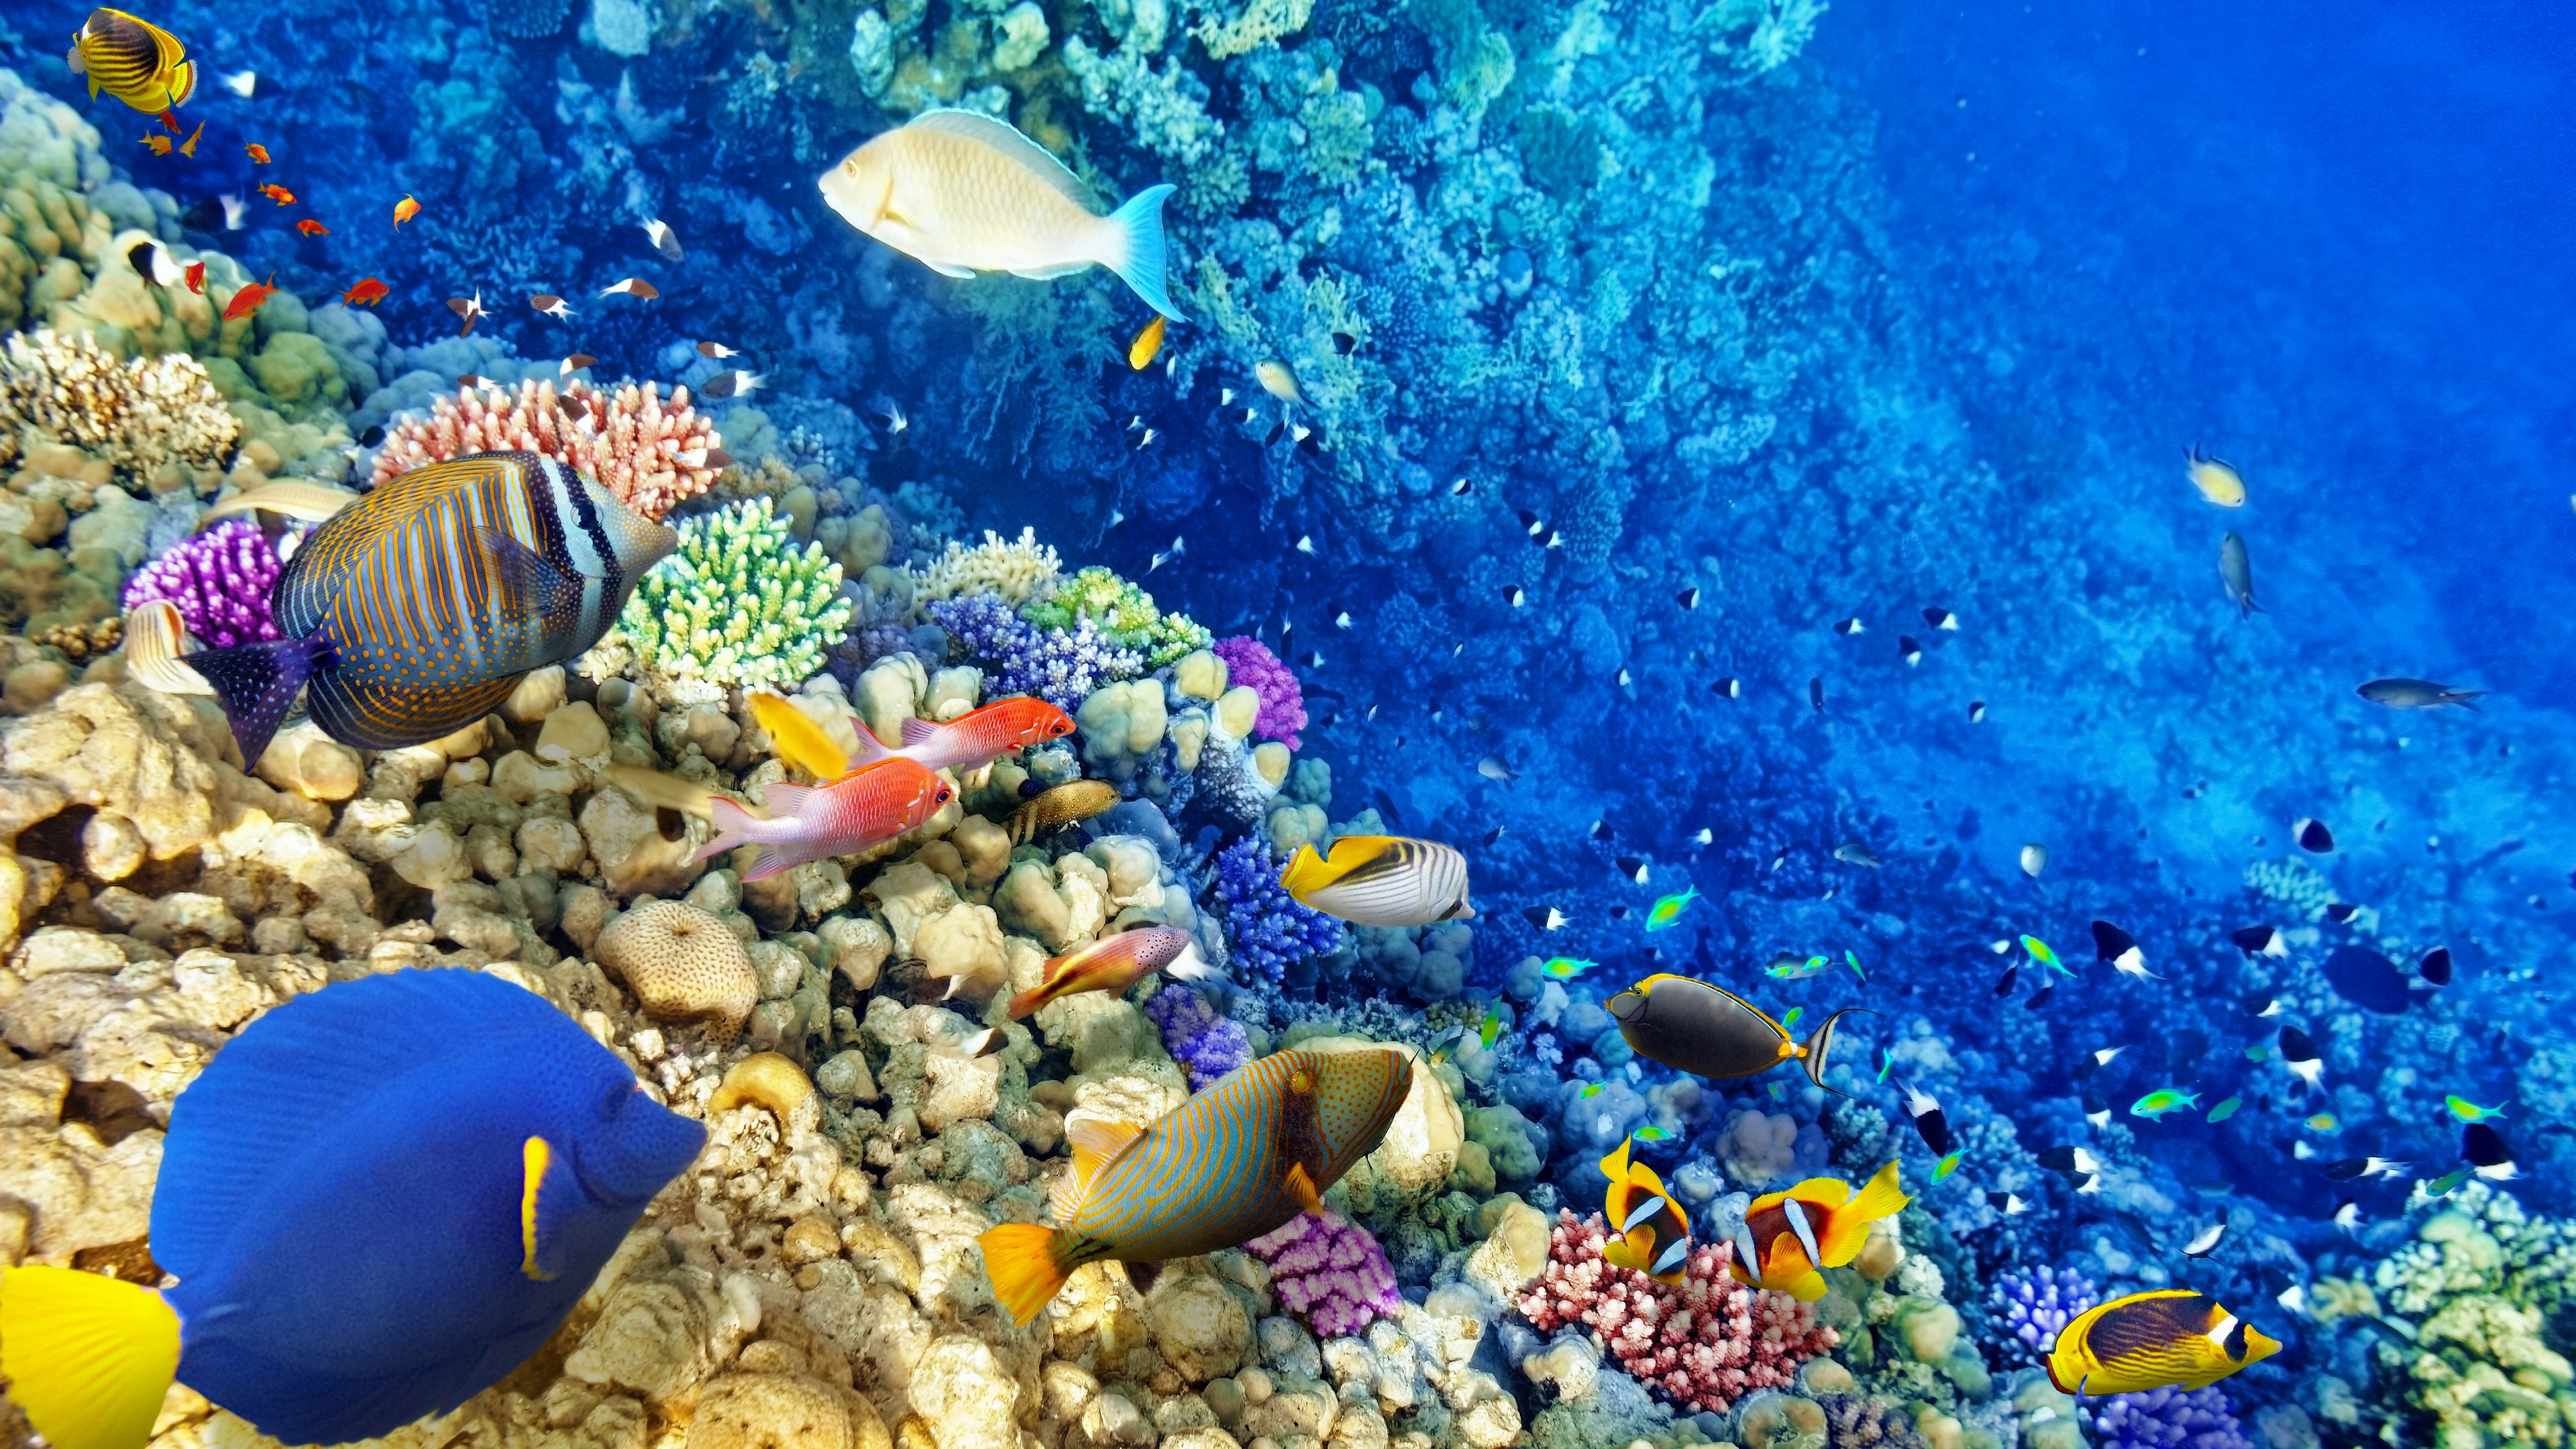 Beautiful coral reefs wallpaper ololoshenka underwater wallpaper underwater fish ocean - Sea coral wallpaper ...